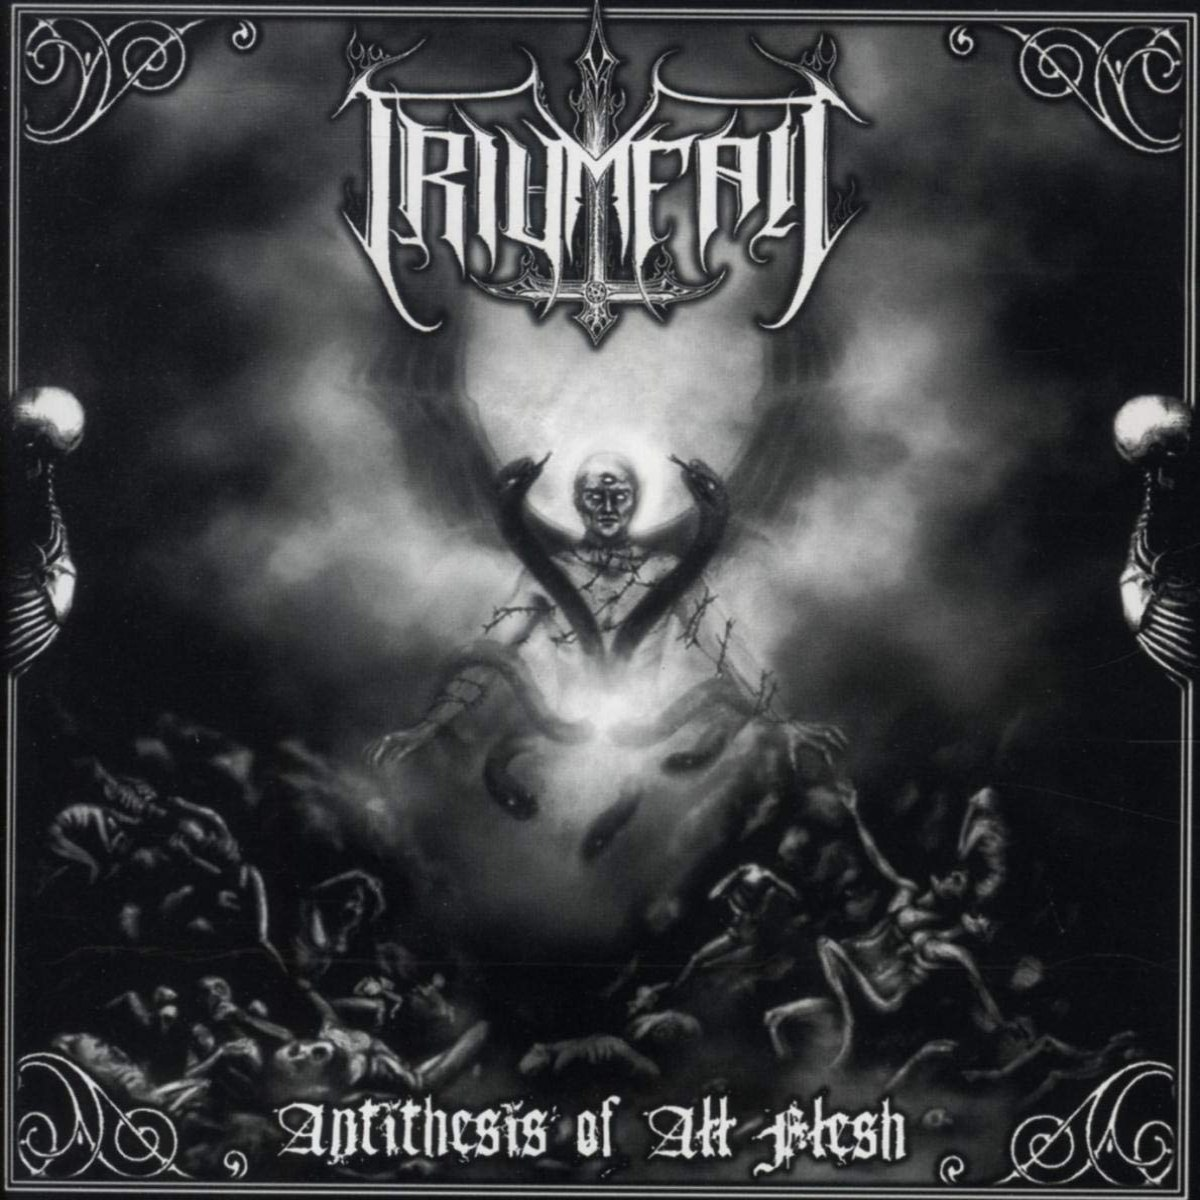 Review for Triumfall - Antithesis of All Flesh